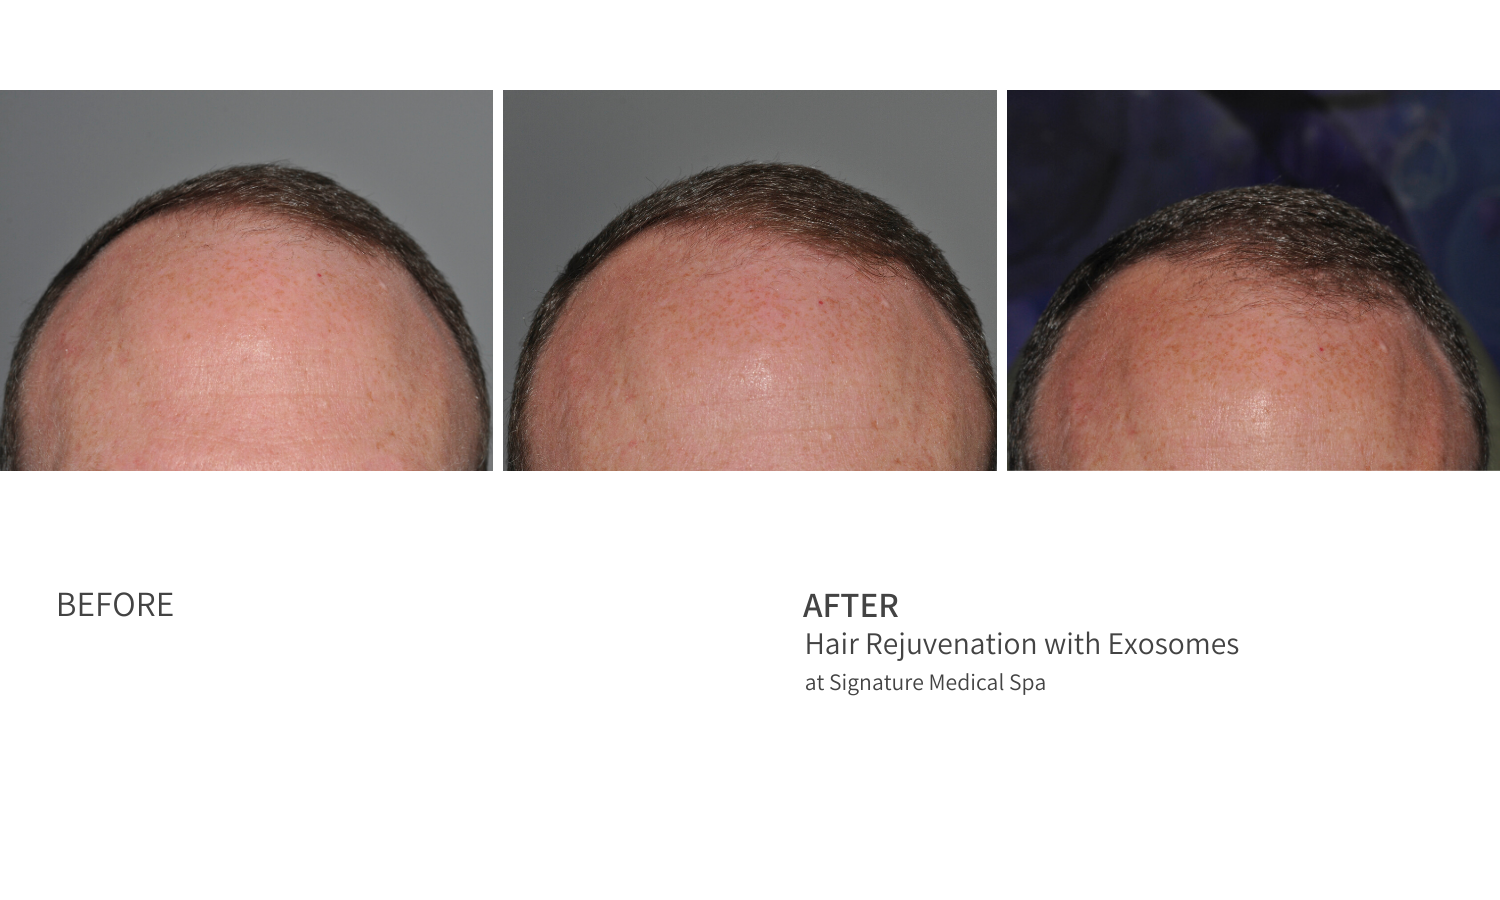 Before and After Exosomes